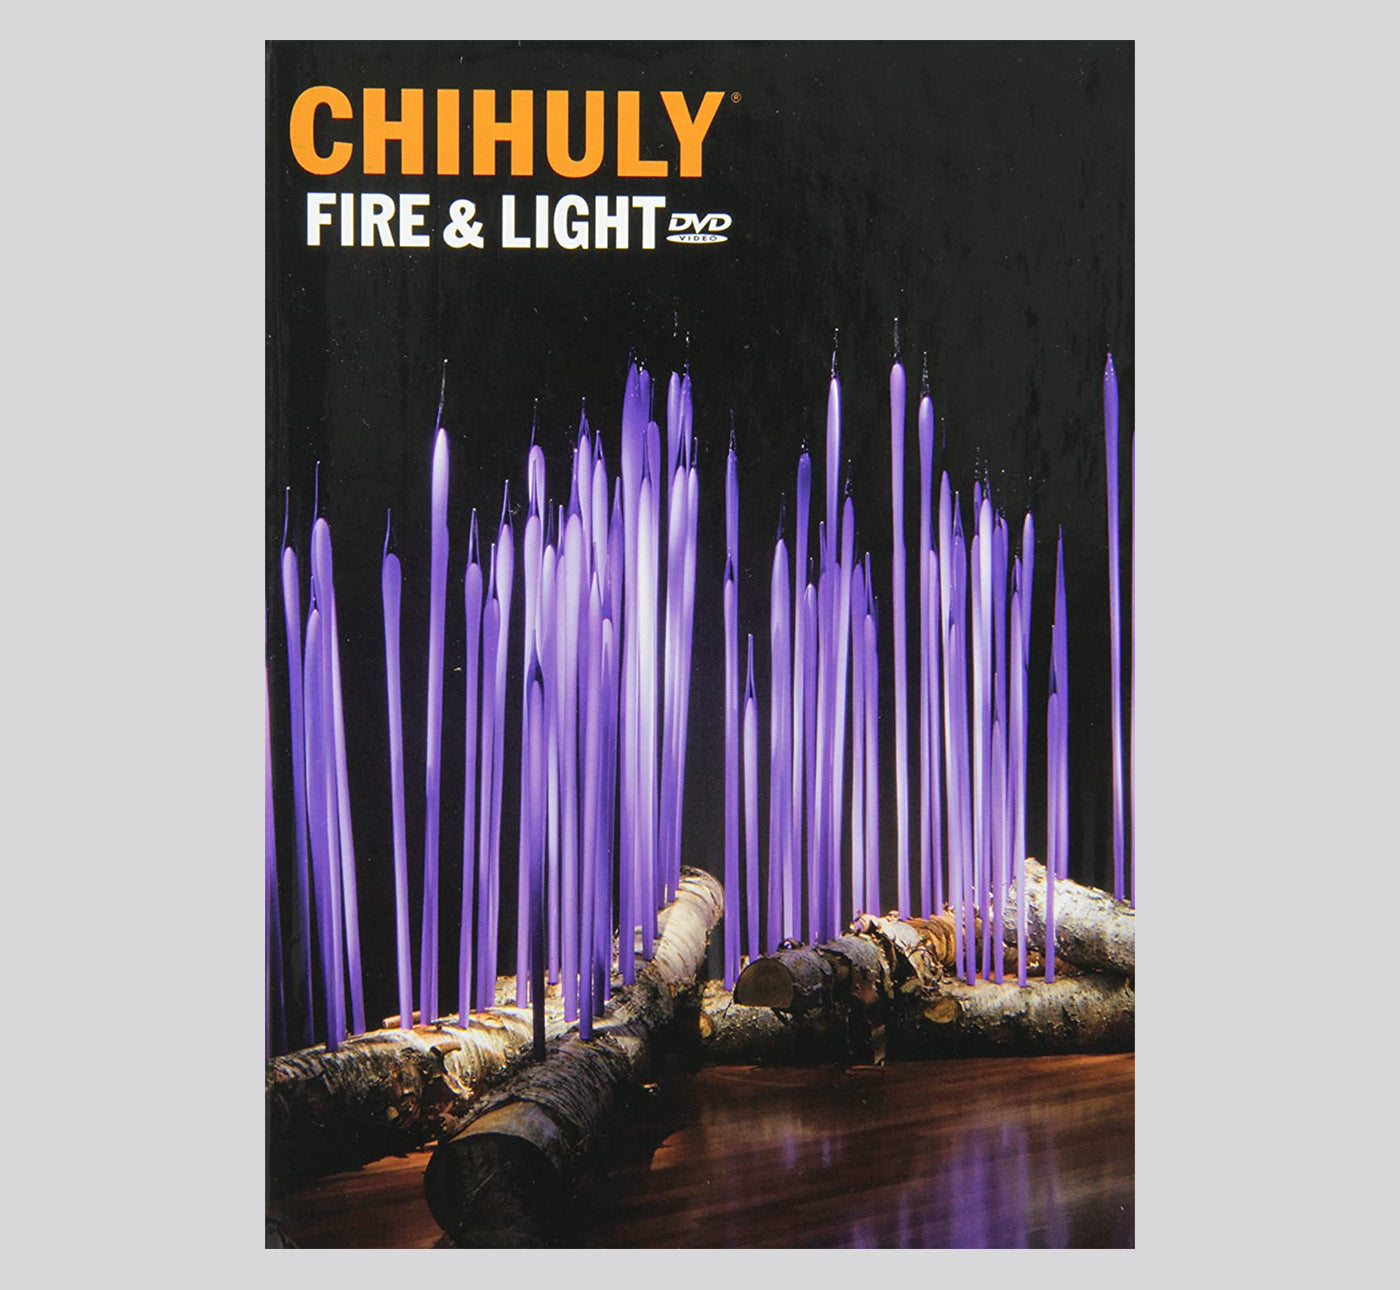 Chihuly Fire and Light DVD and Book Set